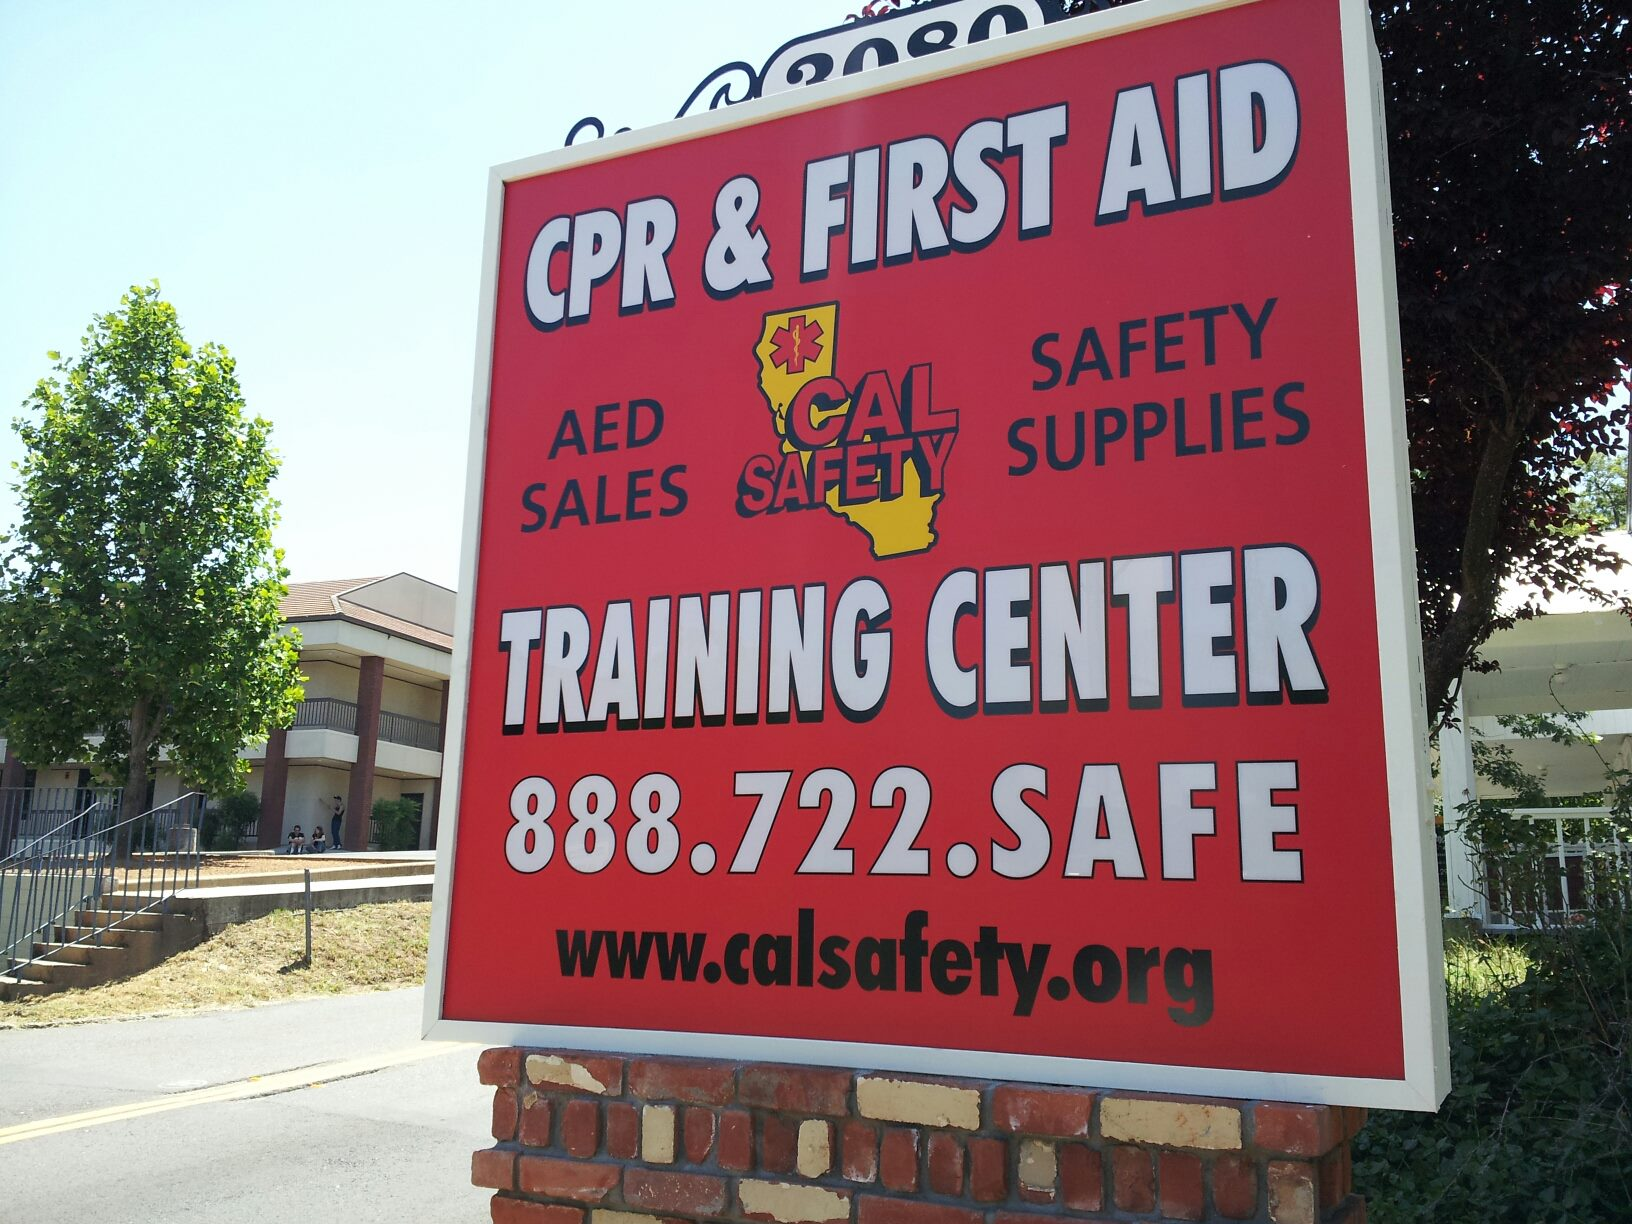 Salinas cpr first aid aed training need to get certification recertification in cpr we offer training classes in california that are easy fun and available 247 xflitez Images